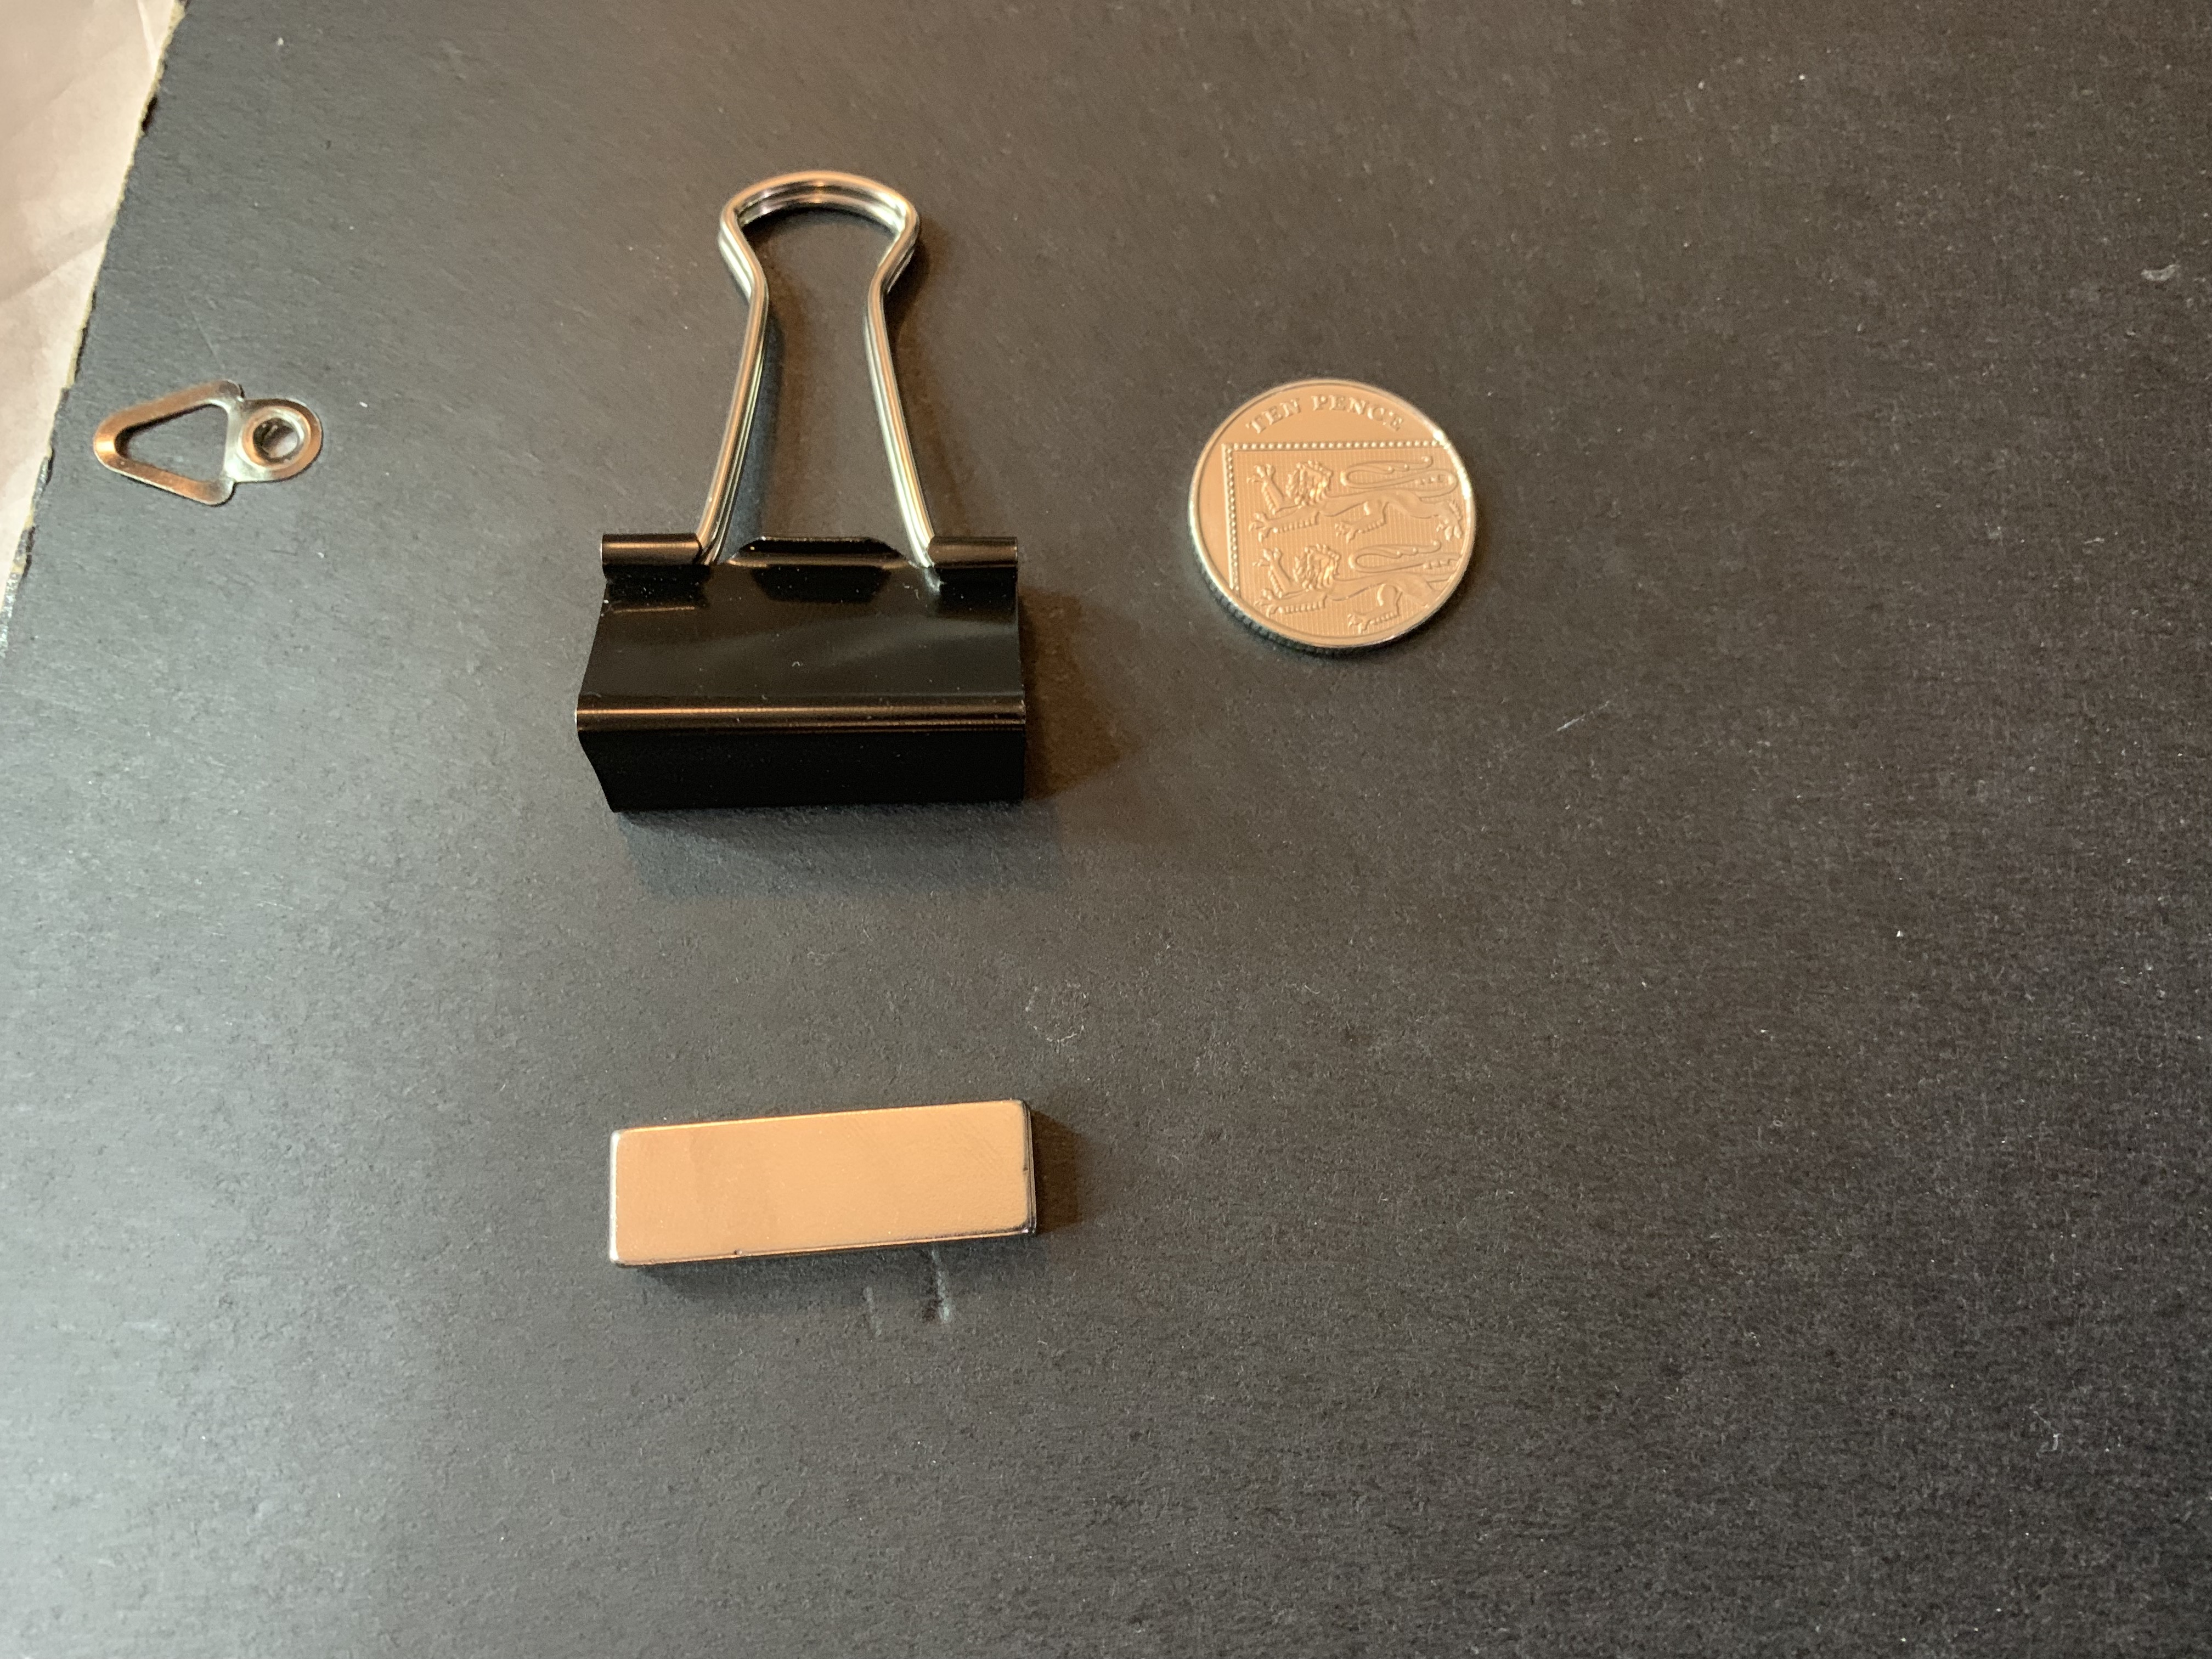 Metal clips and magnets to attach color gels to dishes and modifiers